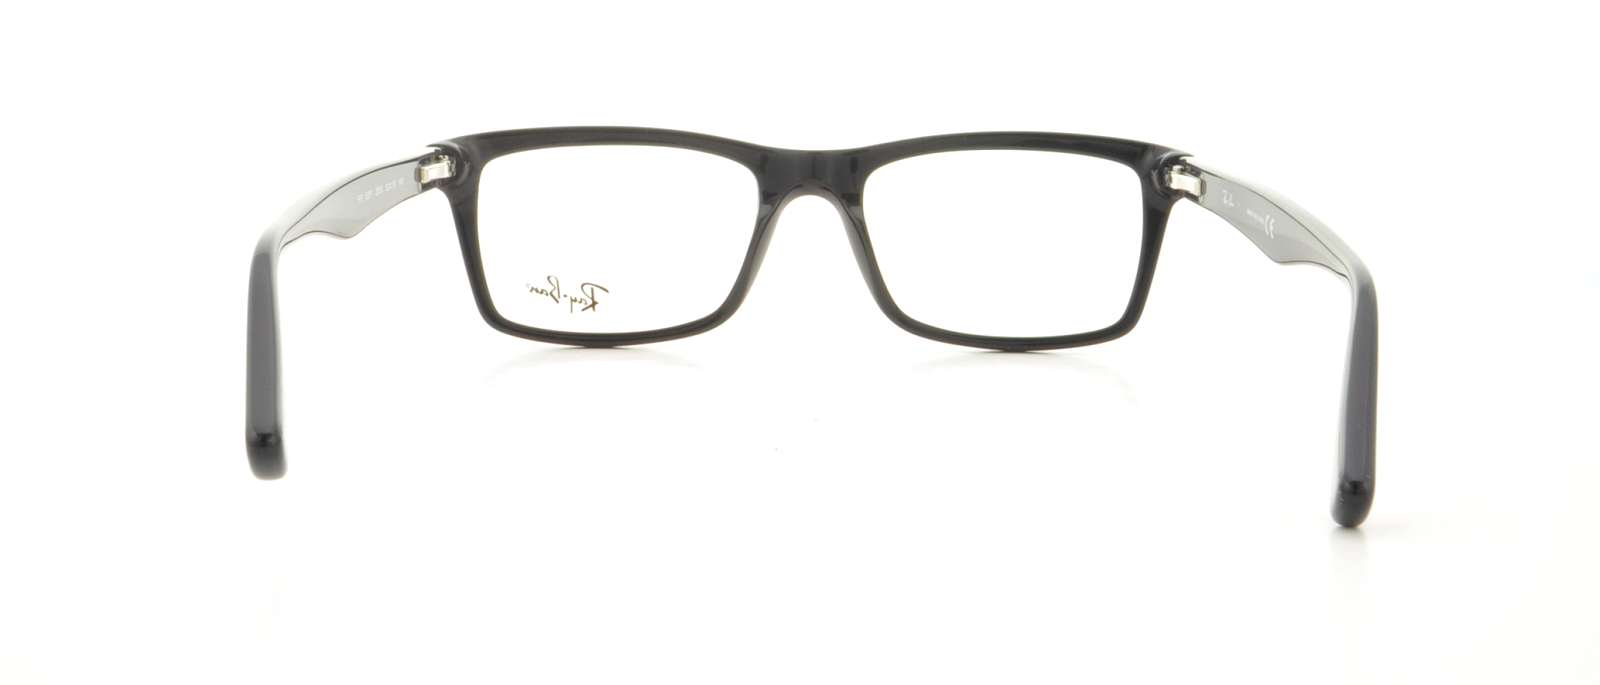 bfd426f10f Picture of Ray Ban Eyeglasses RX5287